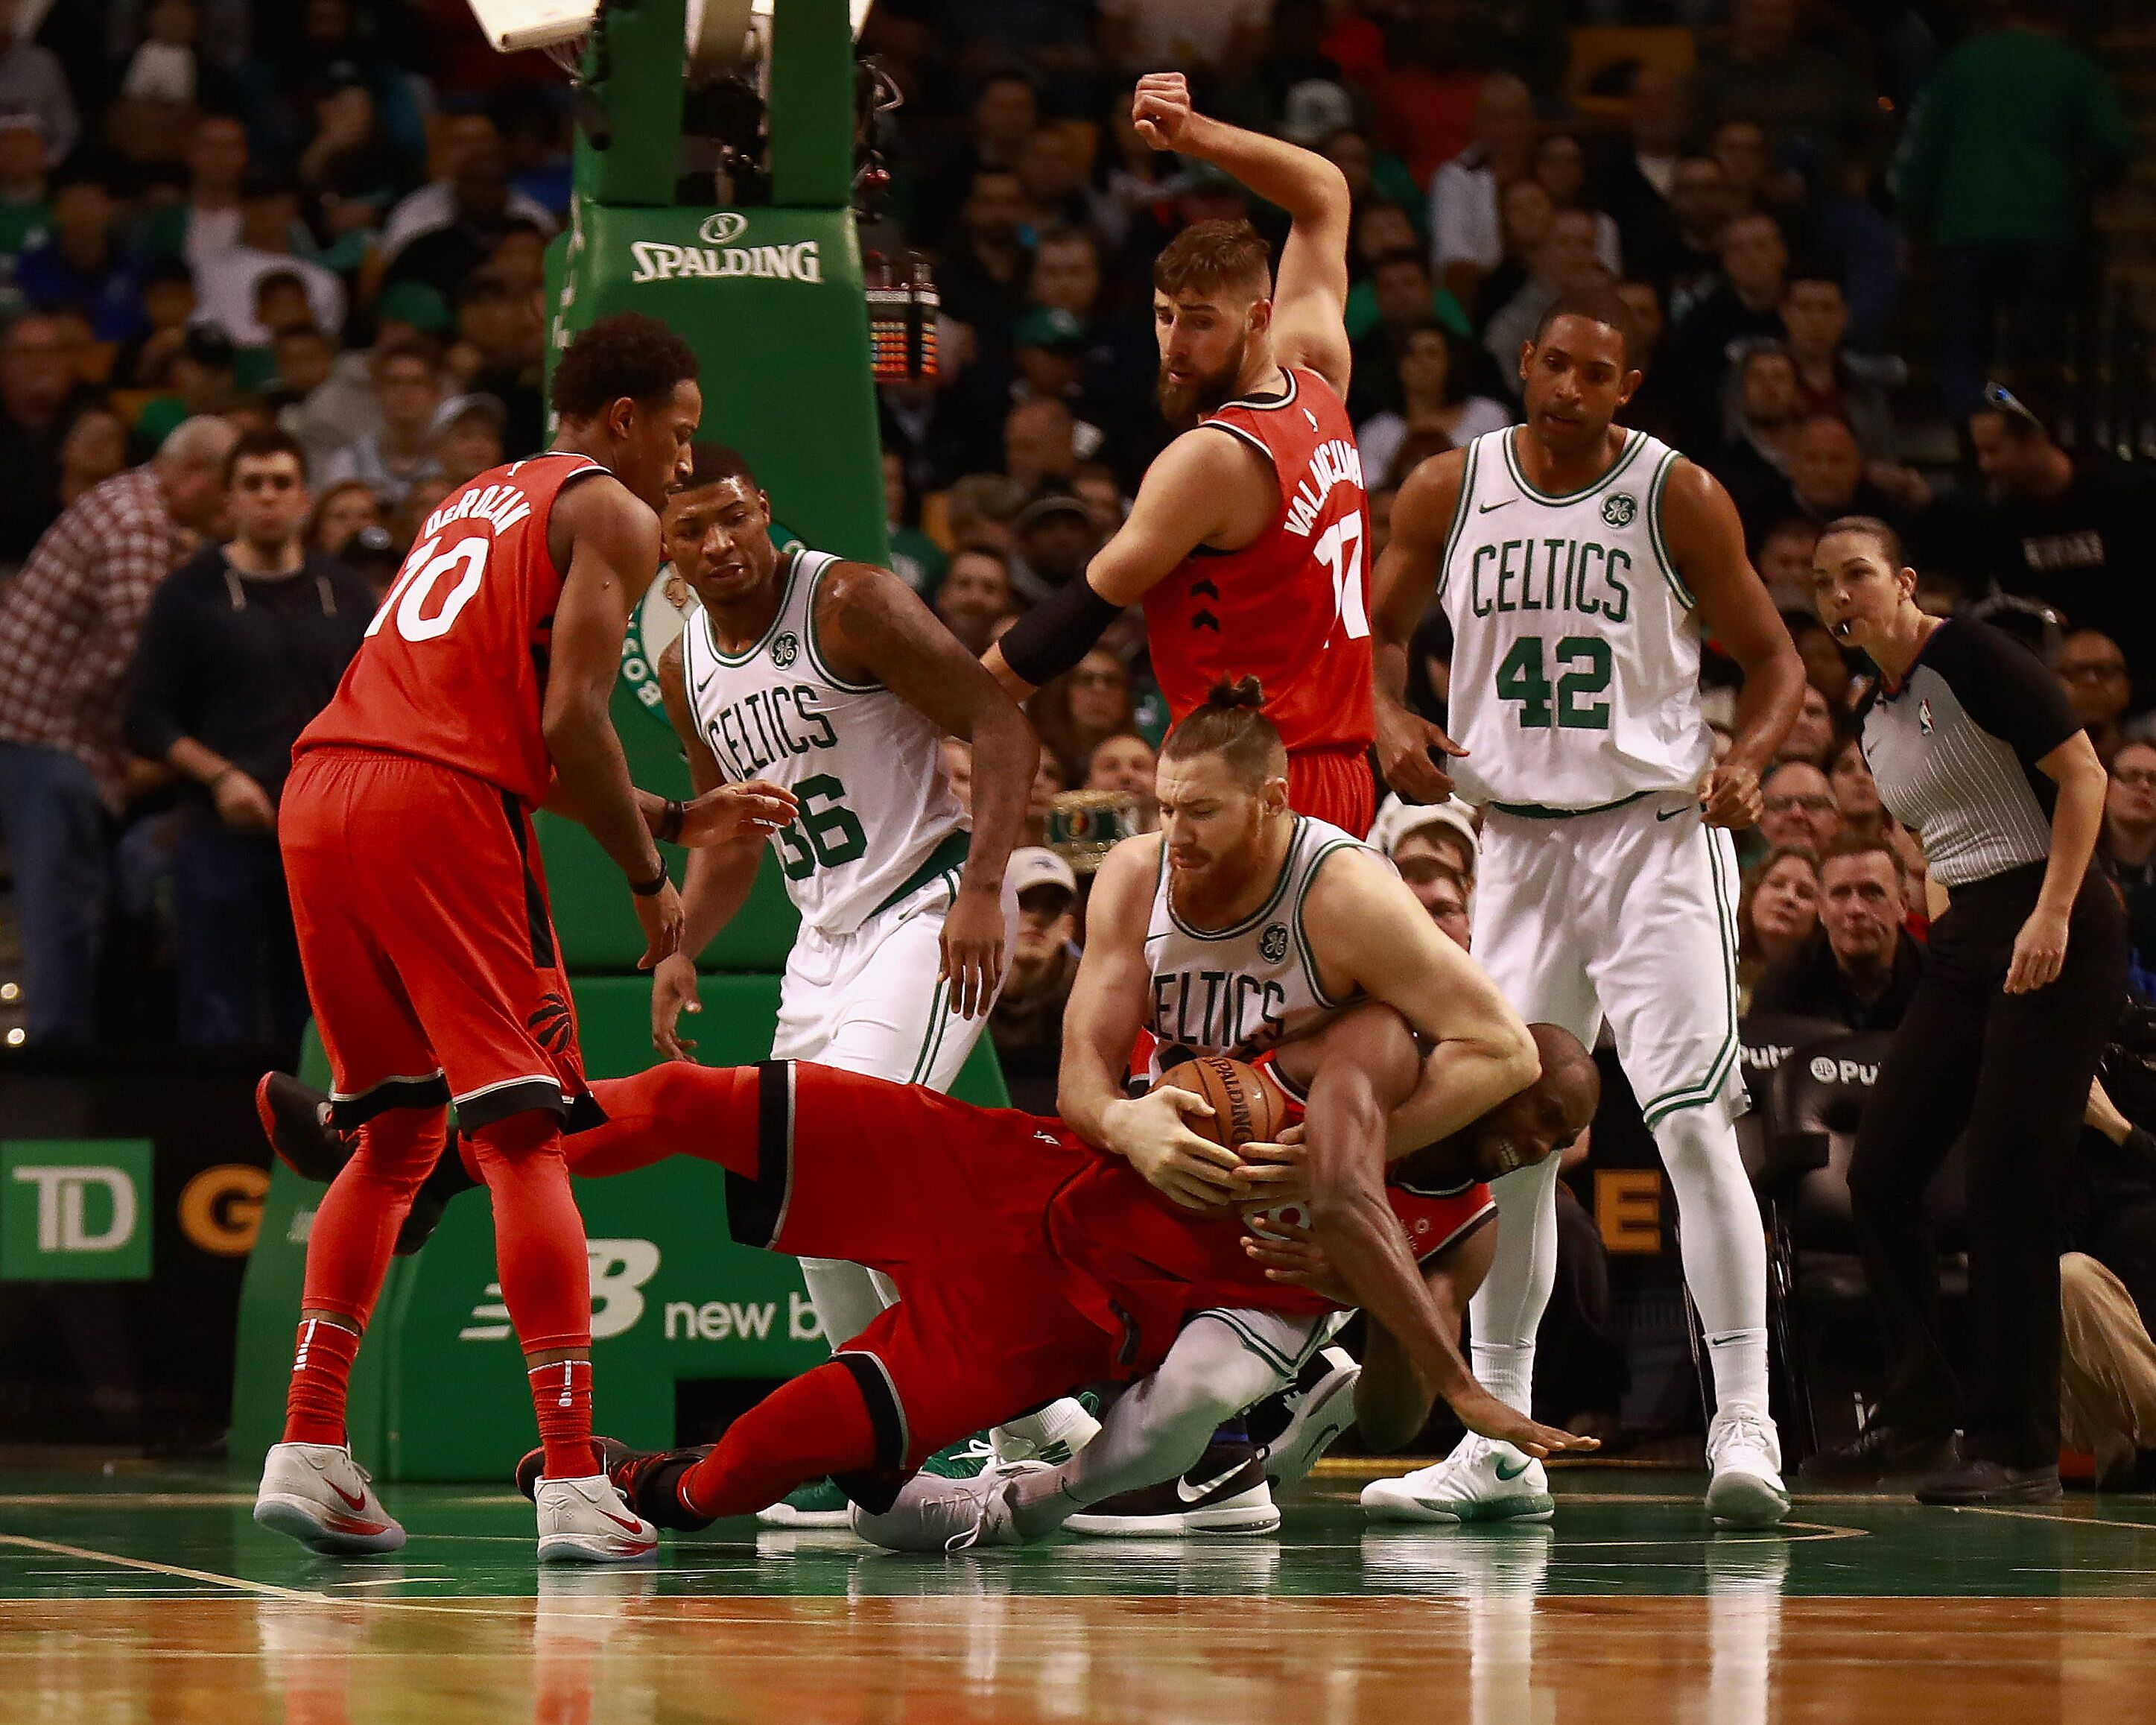 873384424-toronto-raptors-v-boston-celtics.jpg